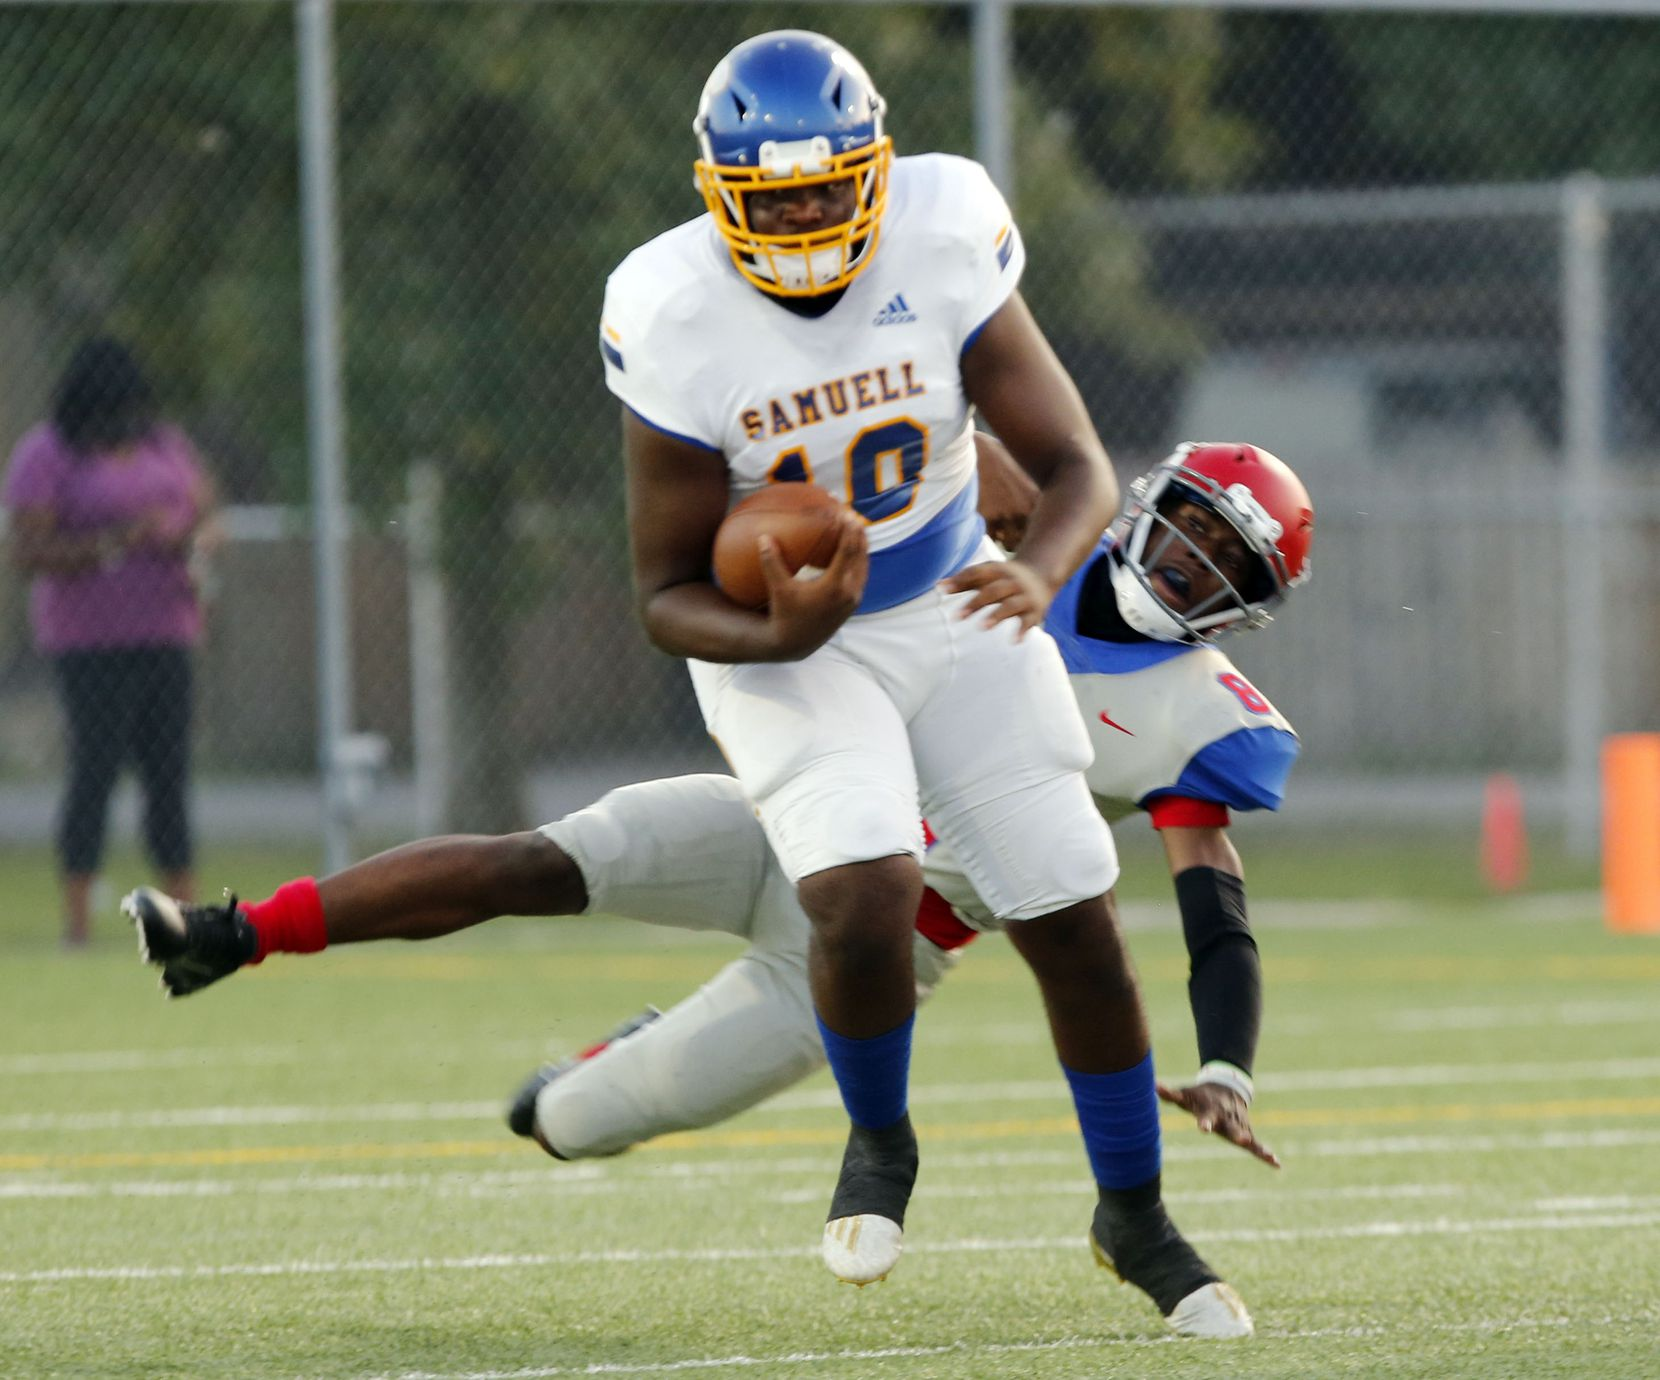 Samuell QB Roie White (10) evades Spruce defender Kelvin Jones (8) during the first half of the season opening high school football game between against Samuell and Spruce High at Pleasant Grove Stadium in Dallas on Friday, August 27, 2021. (John F. Rhodes / Special Contributor)